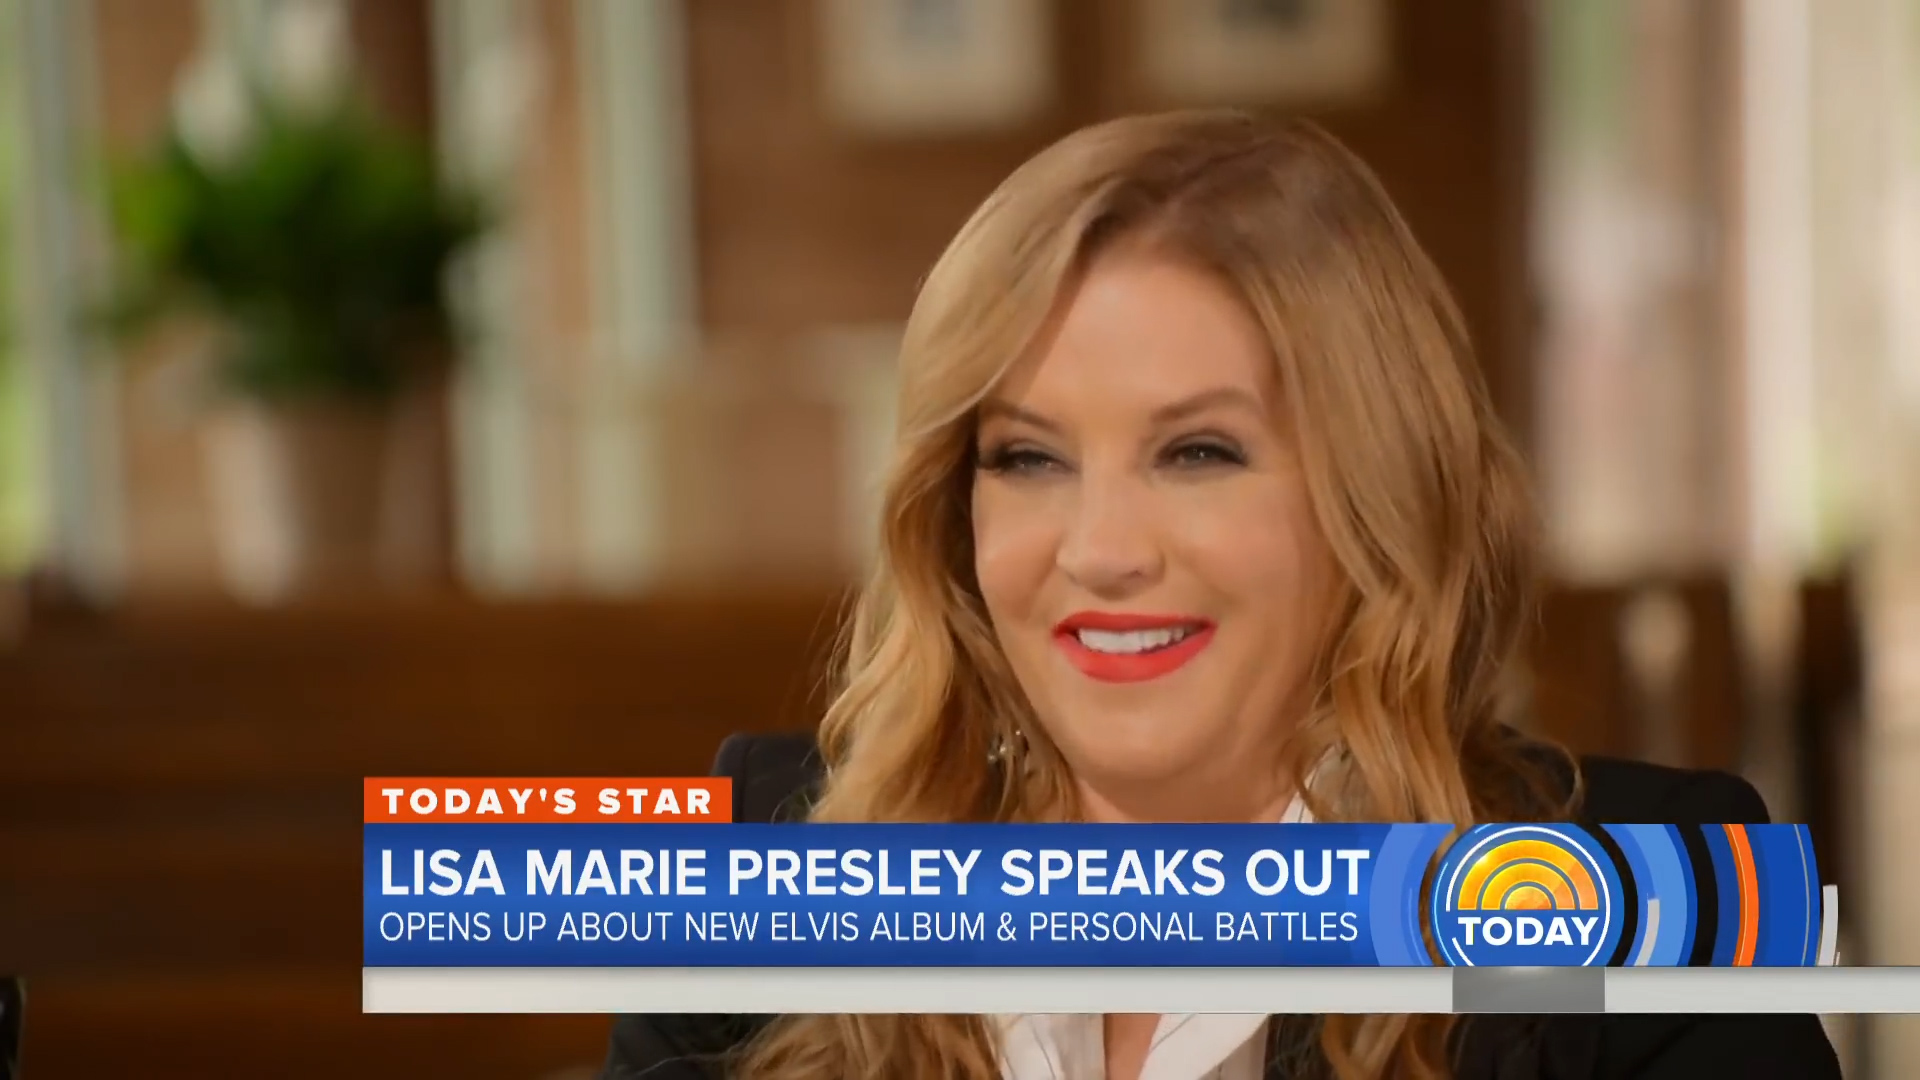 Lisa Marie Presley remembers her father, Elvis Presley, in a new interview